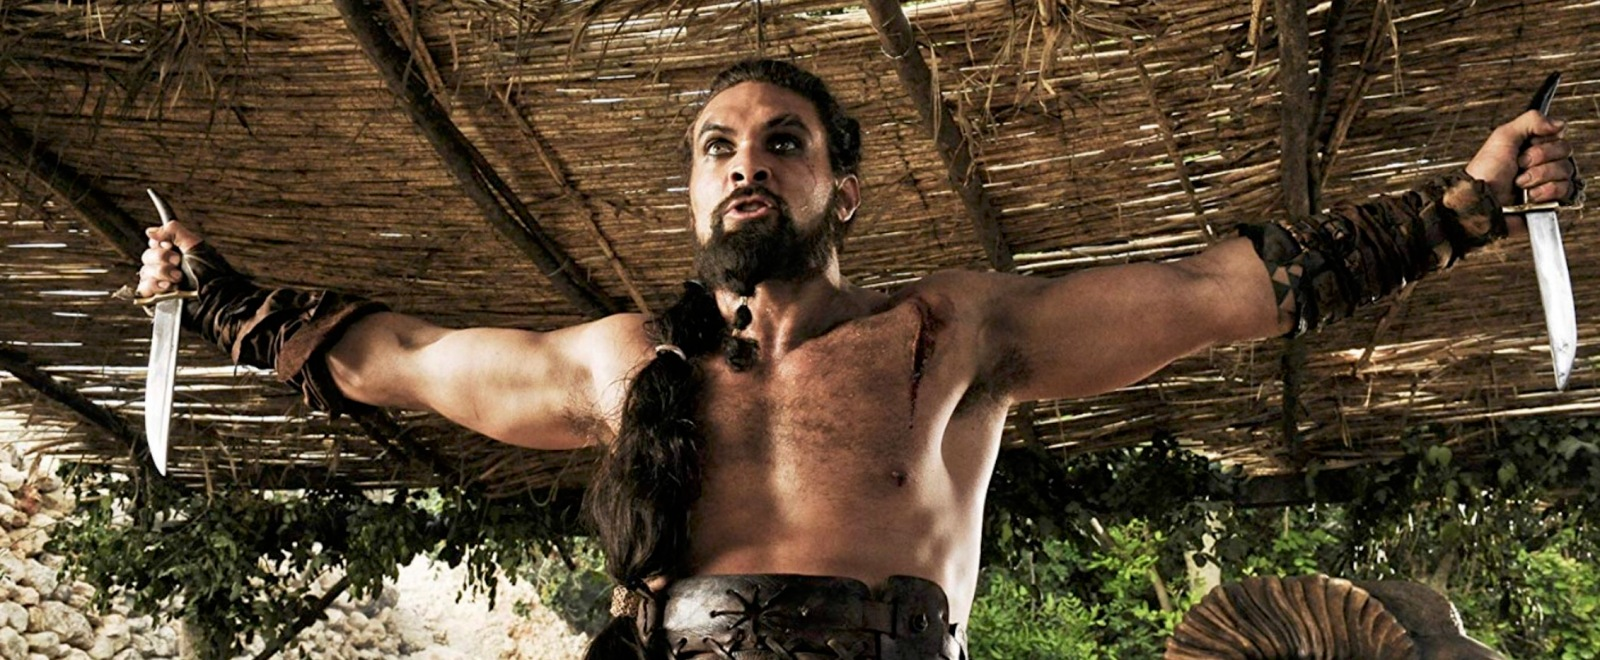 Jason Momoa Did Not Appreciate An 'Icky' Question About The Sexual Violence On 'Game Of Thrones'